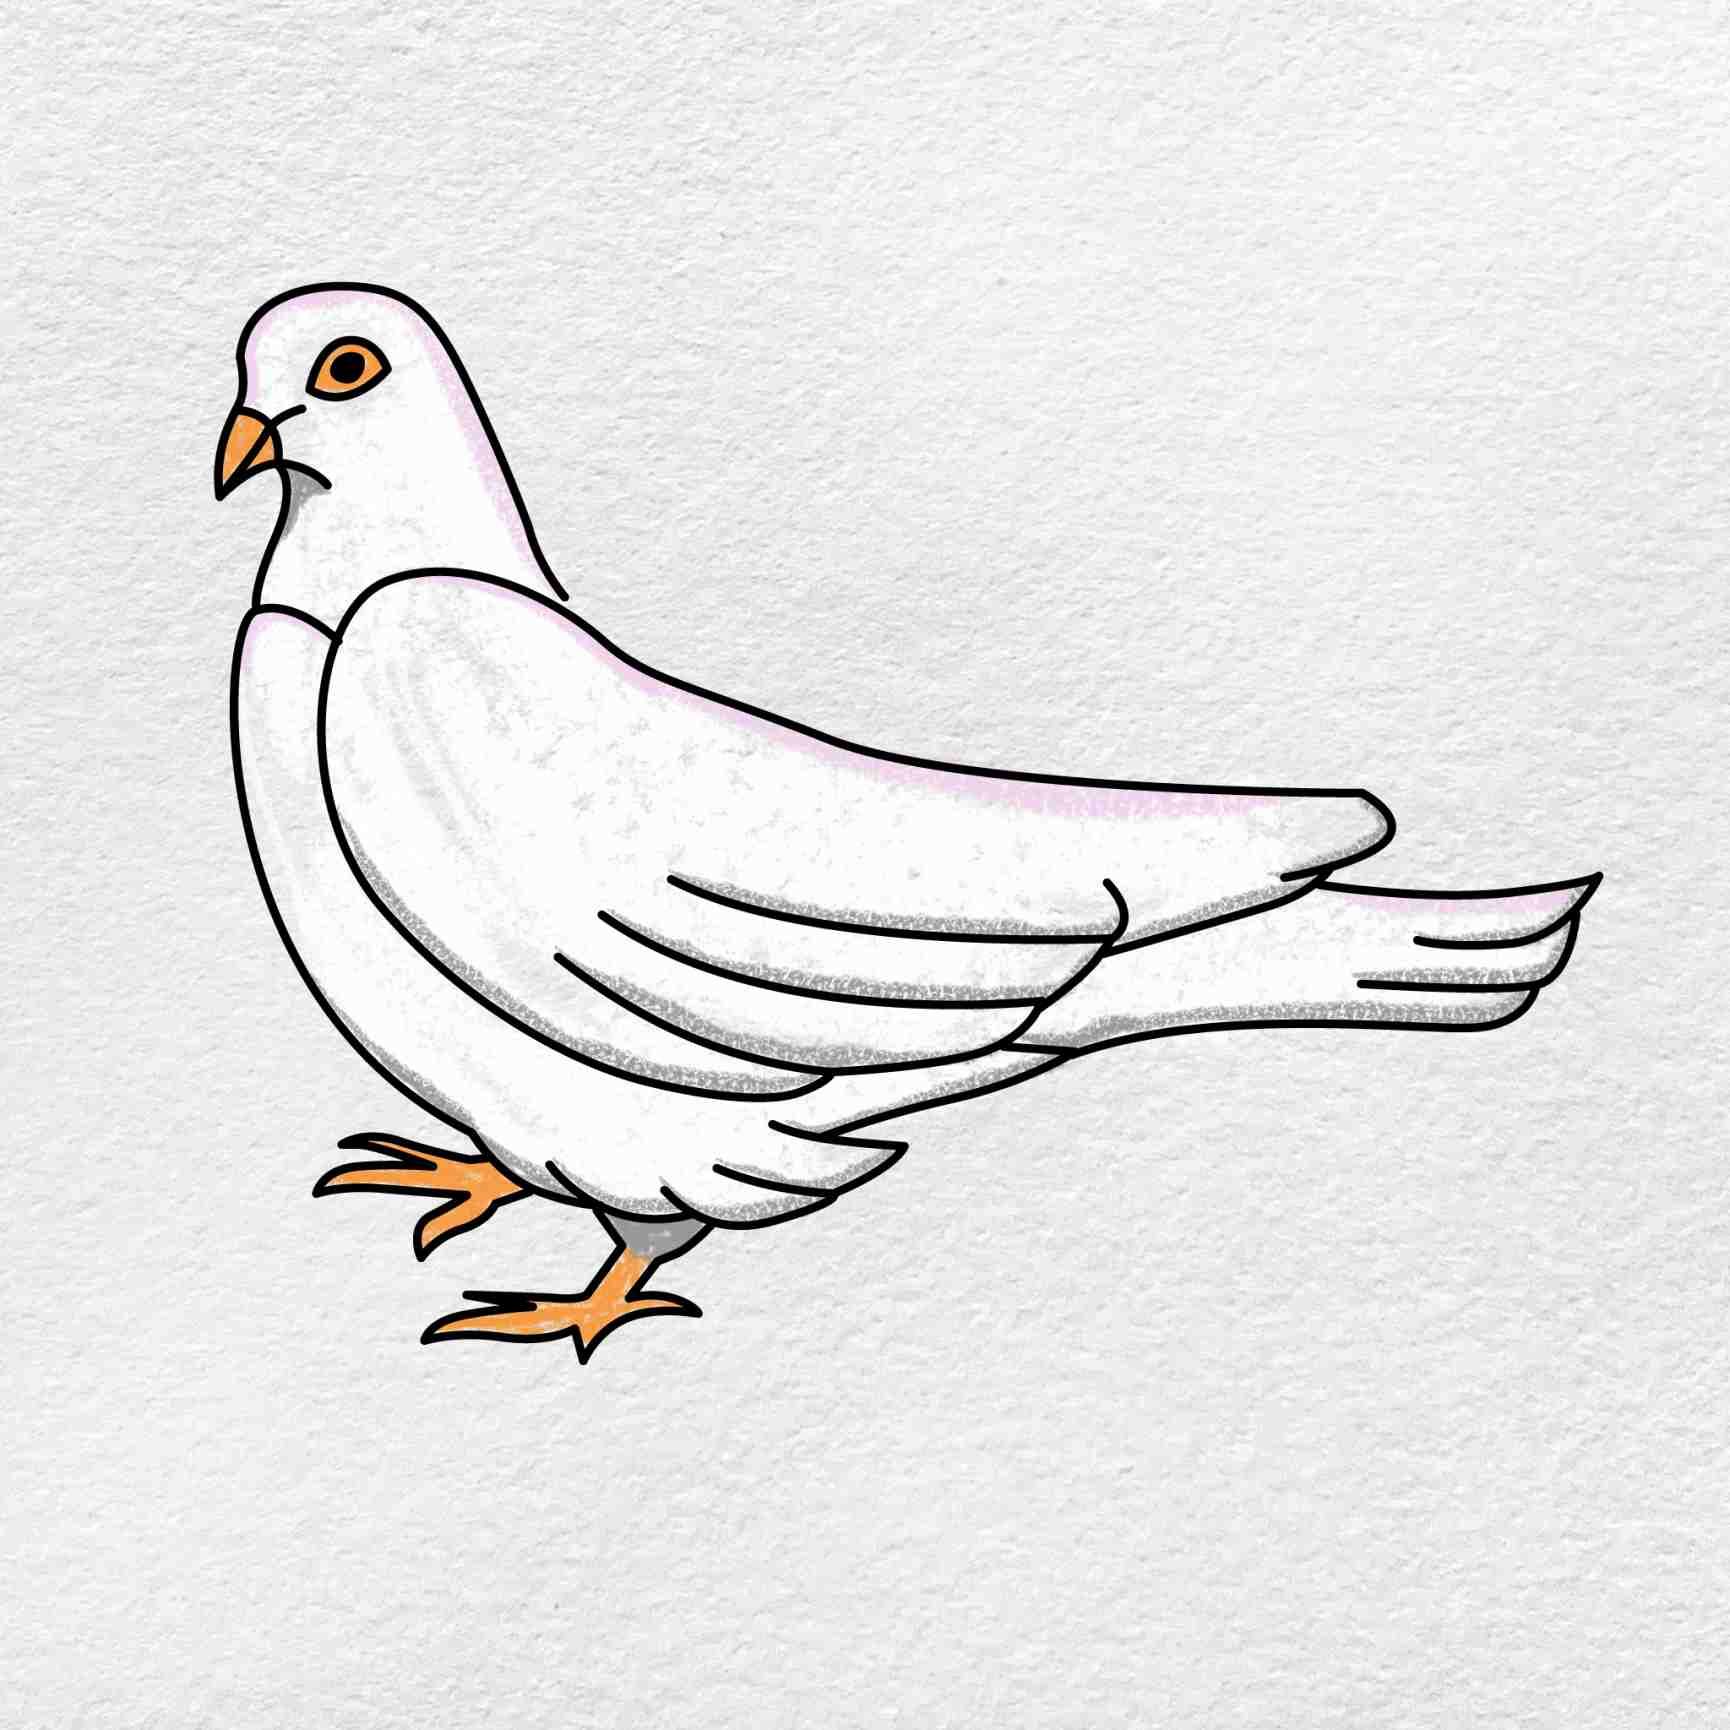 Dove Drawing: Step 6